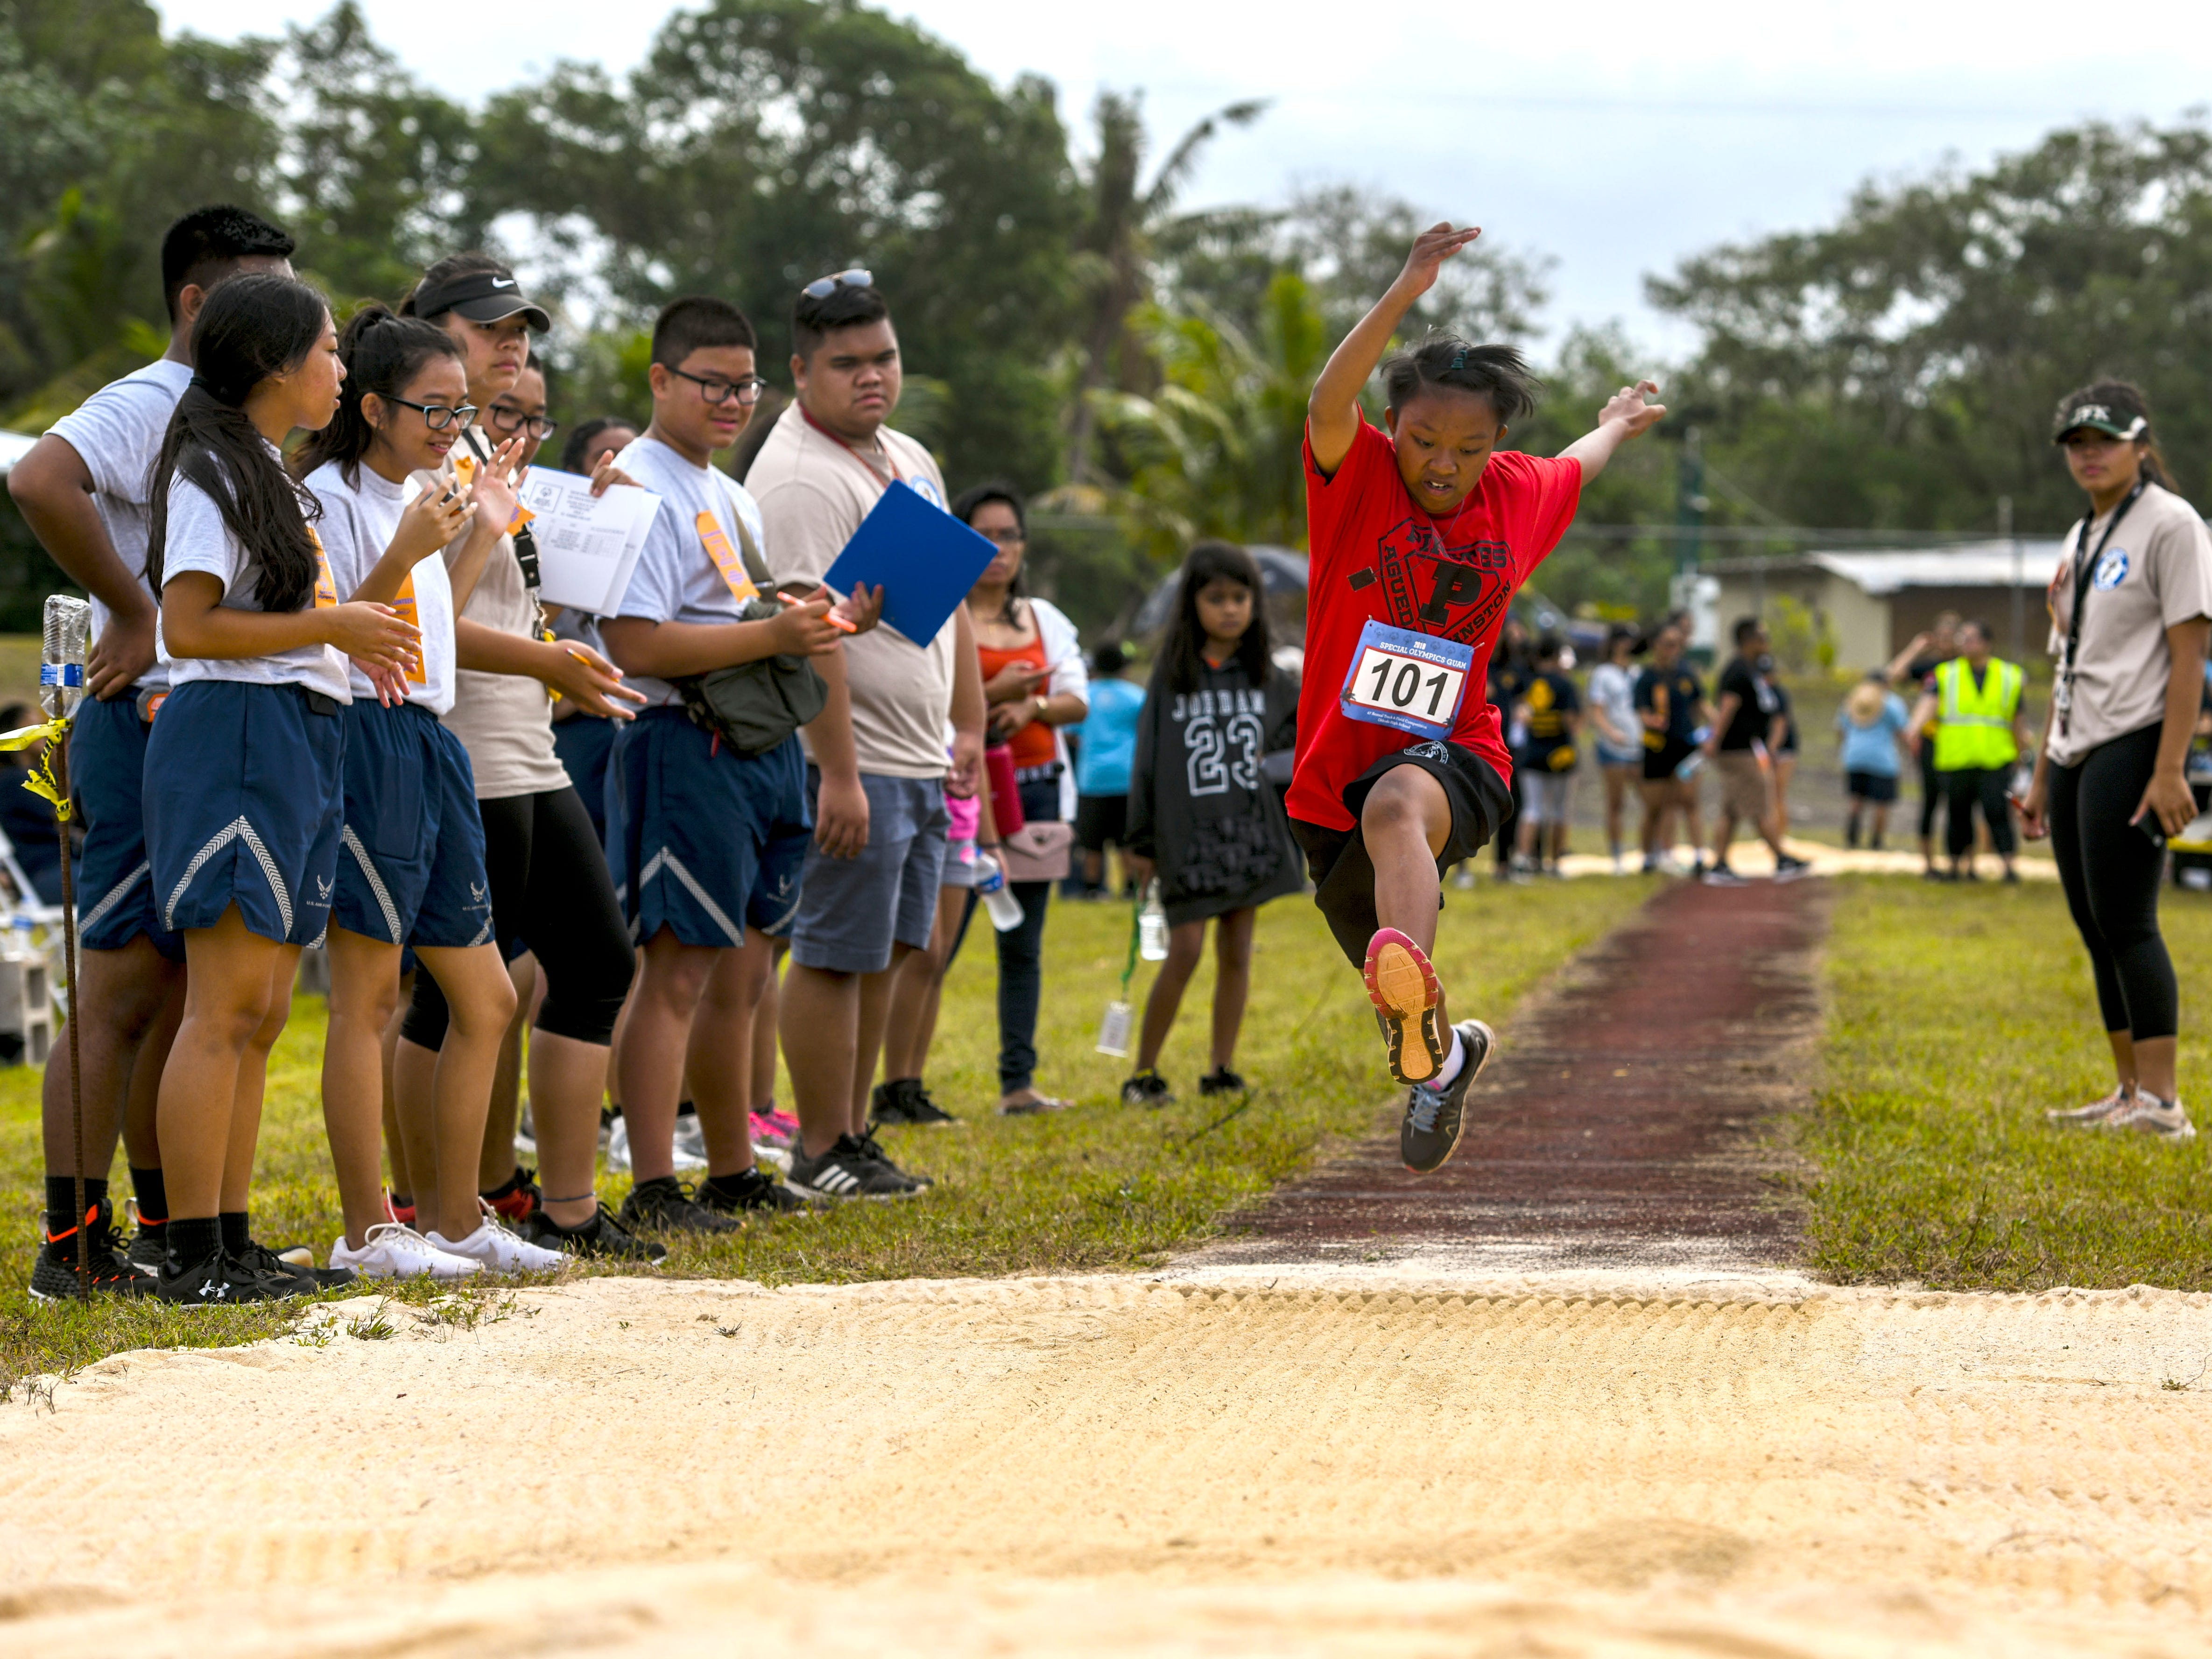 Special Olympian Angel Obra (101) takes flight on her second long jump attempt during the 43rd Special Olympics Guam Track & Field competition at Okkodo High School in Dededo on Saturday, March 16, 2019.